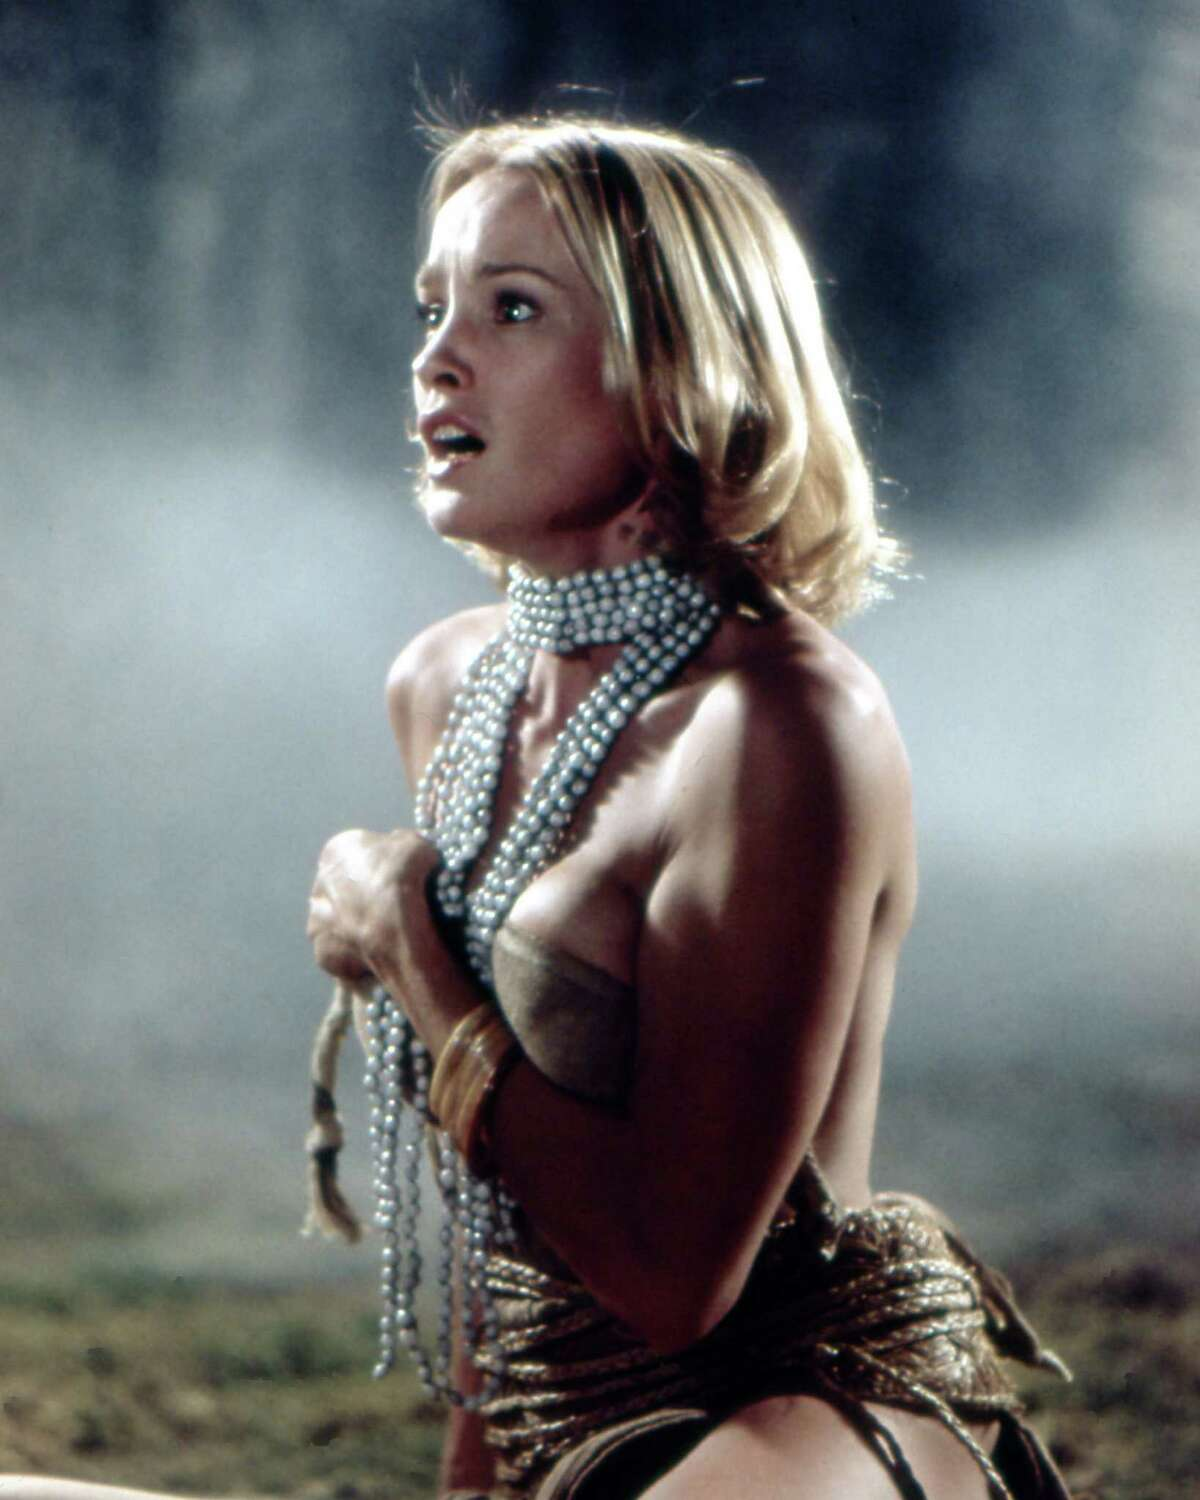 Jessica Lange made her professional film debut in the 1976 remake of King Kong, pictured.